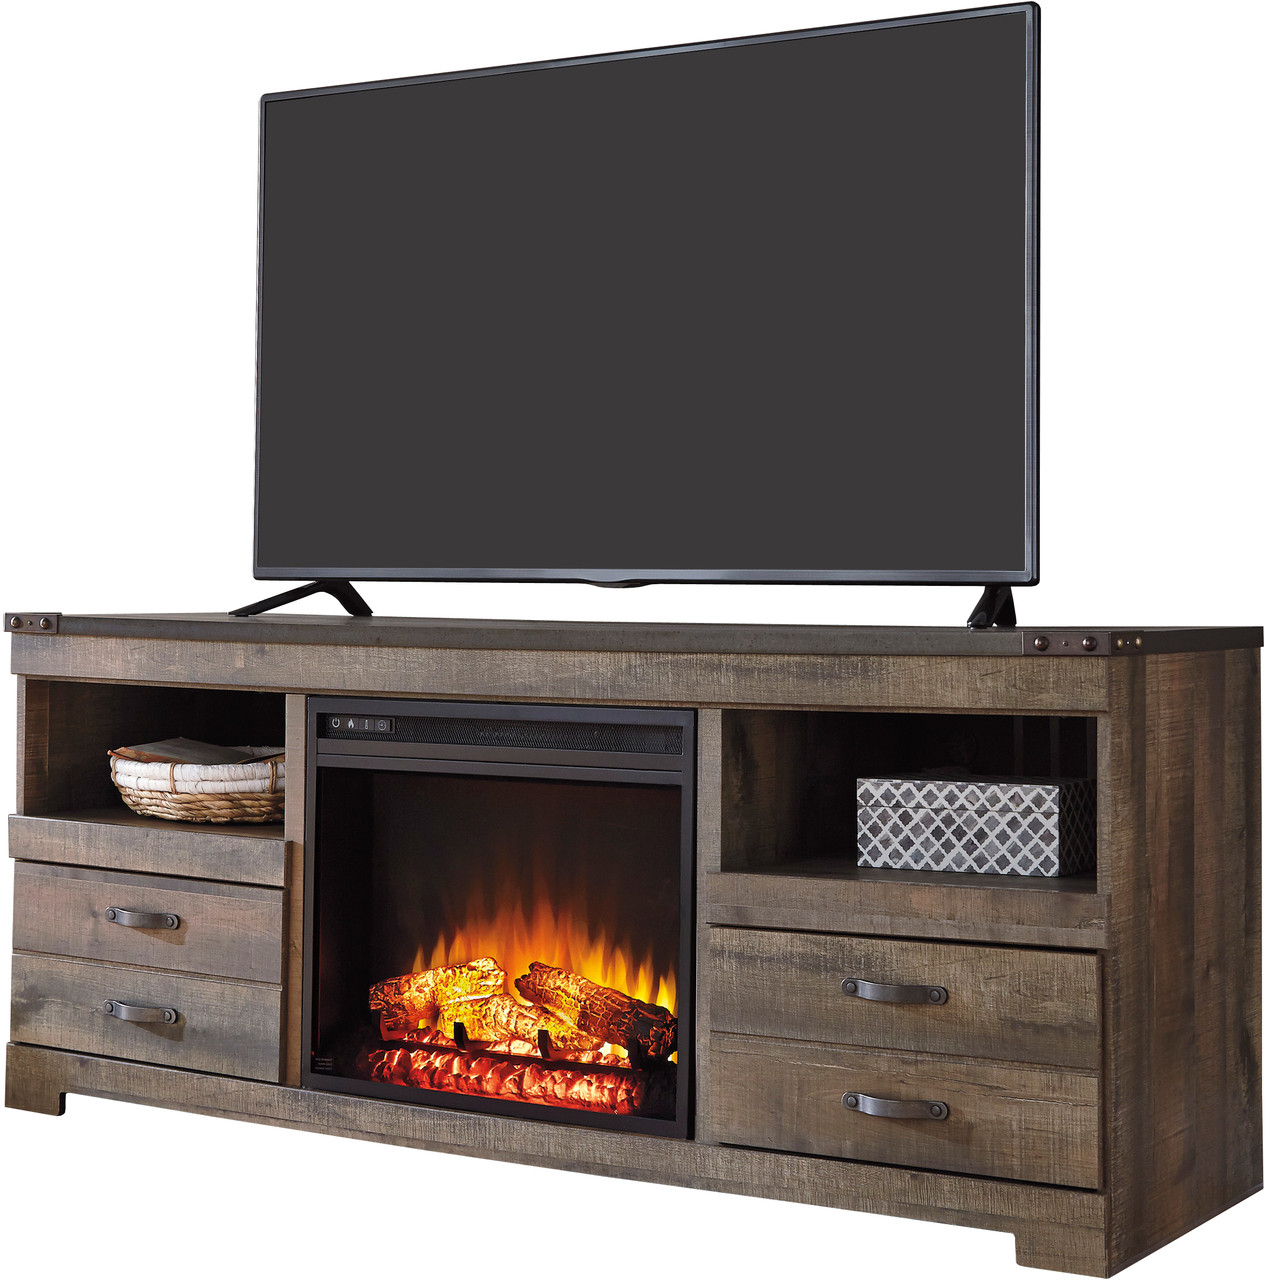 Benni Warm Rustic Tv Stand With Fireplace Cb Furniture